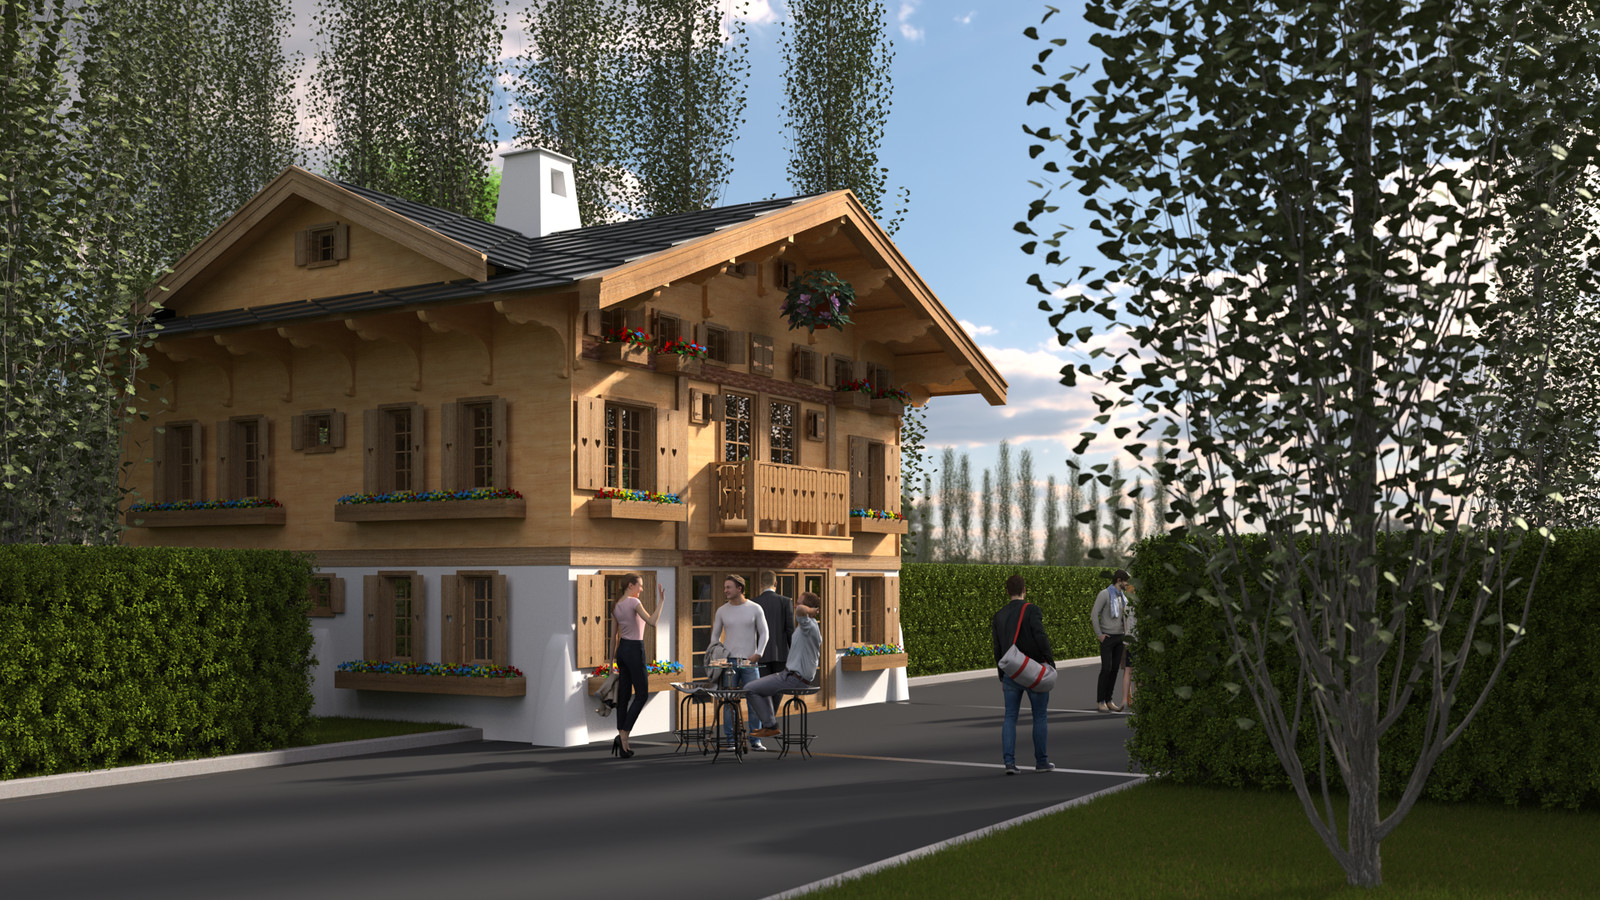 SketchUp 2018 + Thea Render  La Grange work-Scene 59 2pt Maxi sized Traditional Swiss Chalet Event Build  HDR by HDRI-SKIES found here: http://hdri-skies.com/shop/hdri-sky-208/